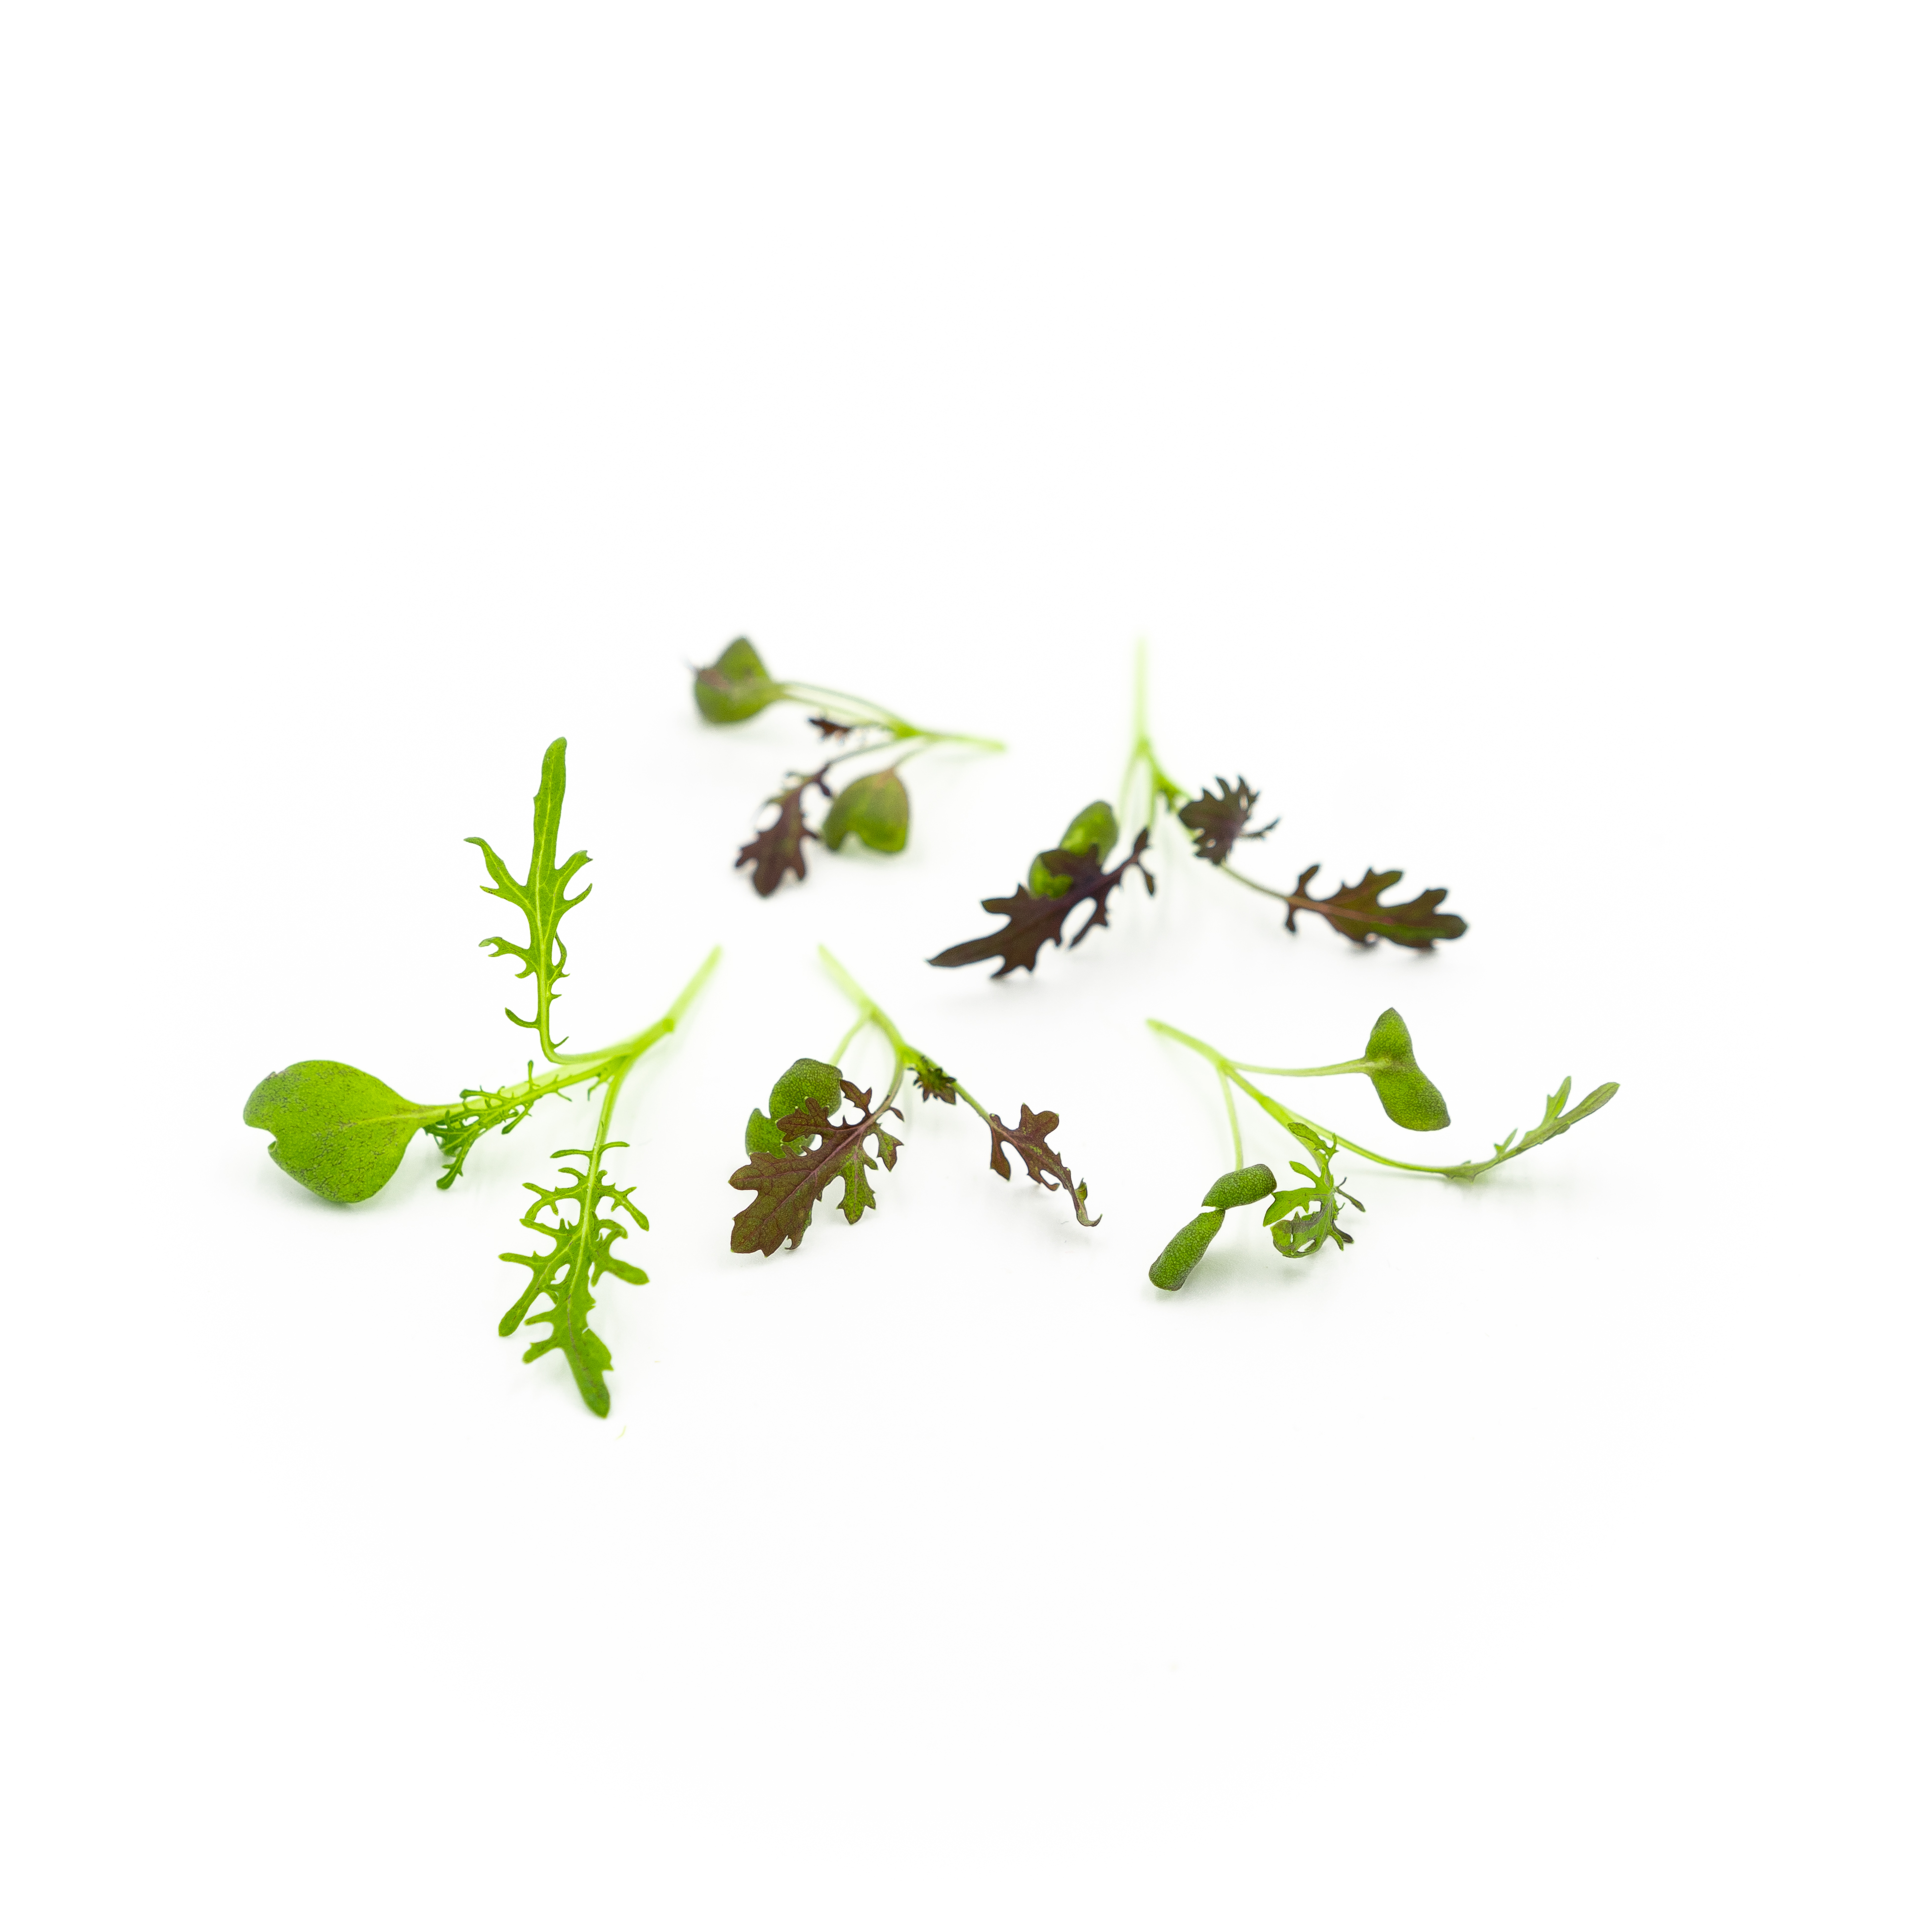 A spicy microgreen with frilly mottled green-purple leaves